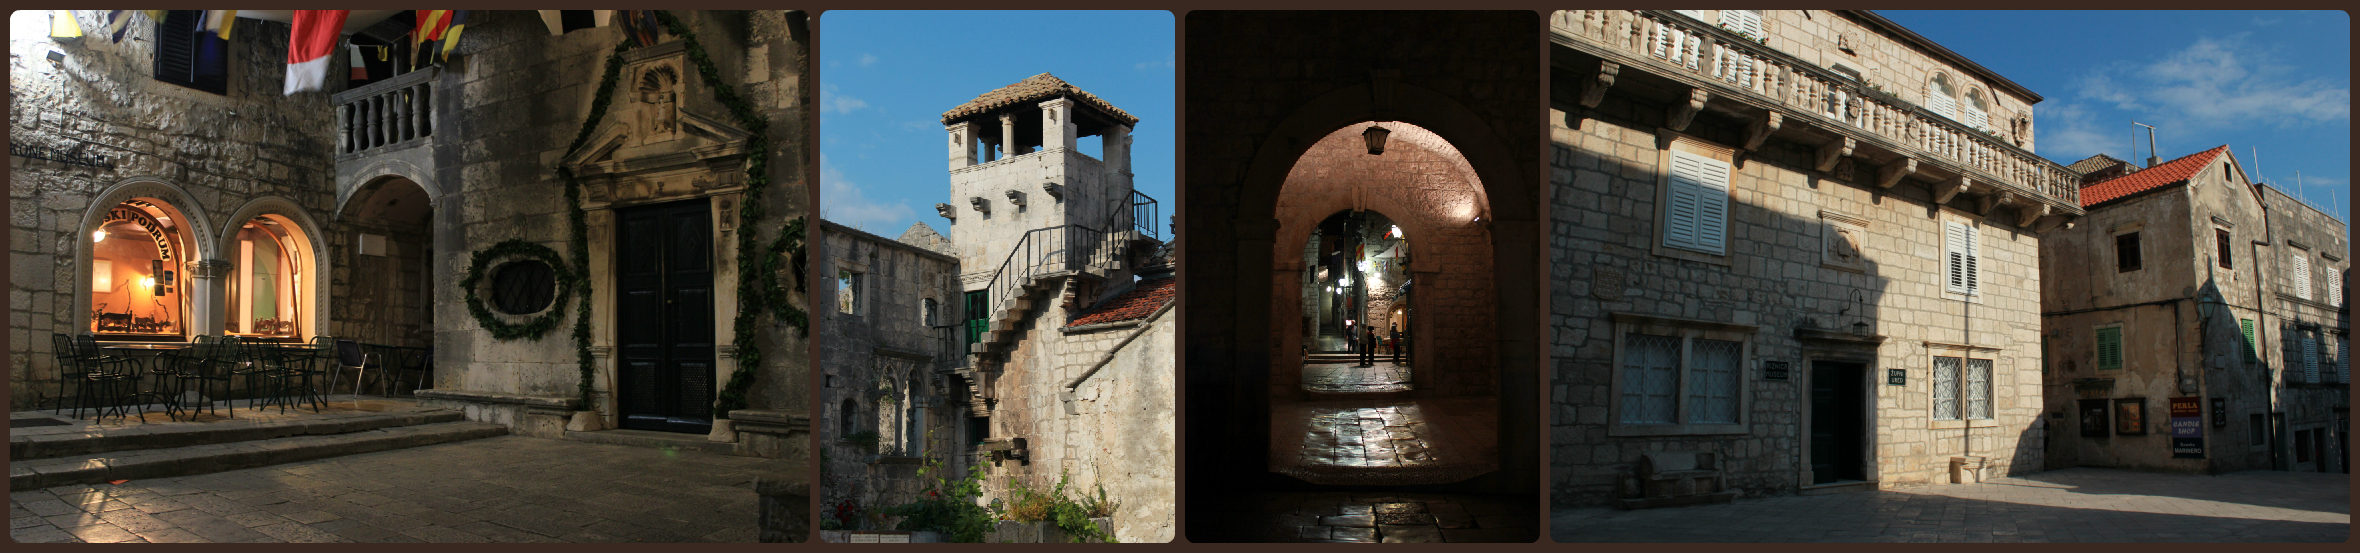 Old Town streets, Korcula